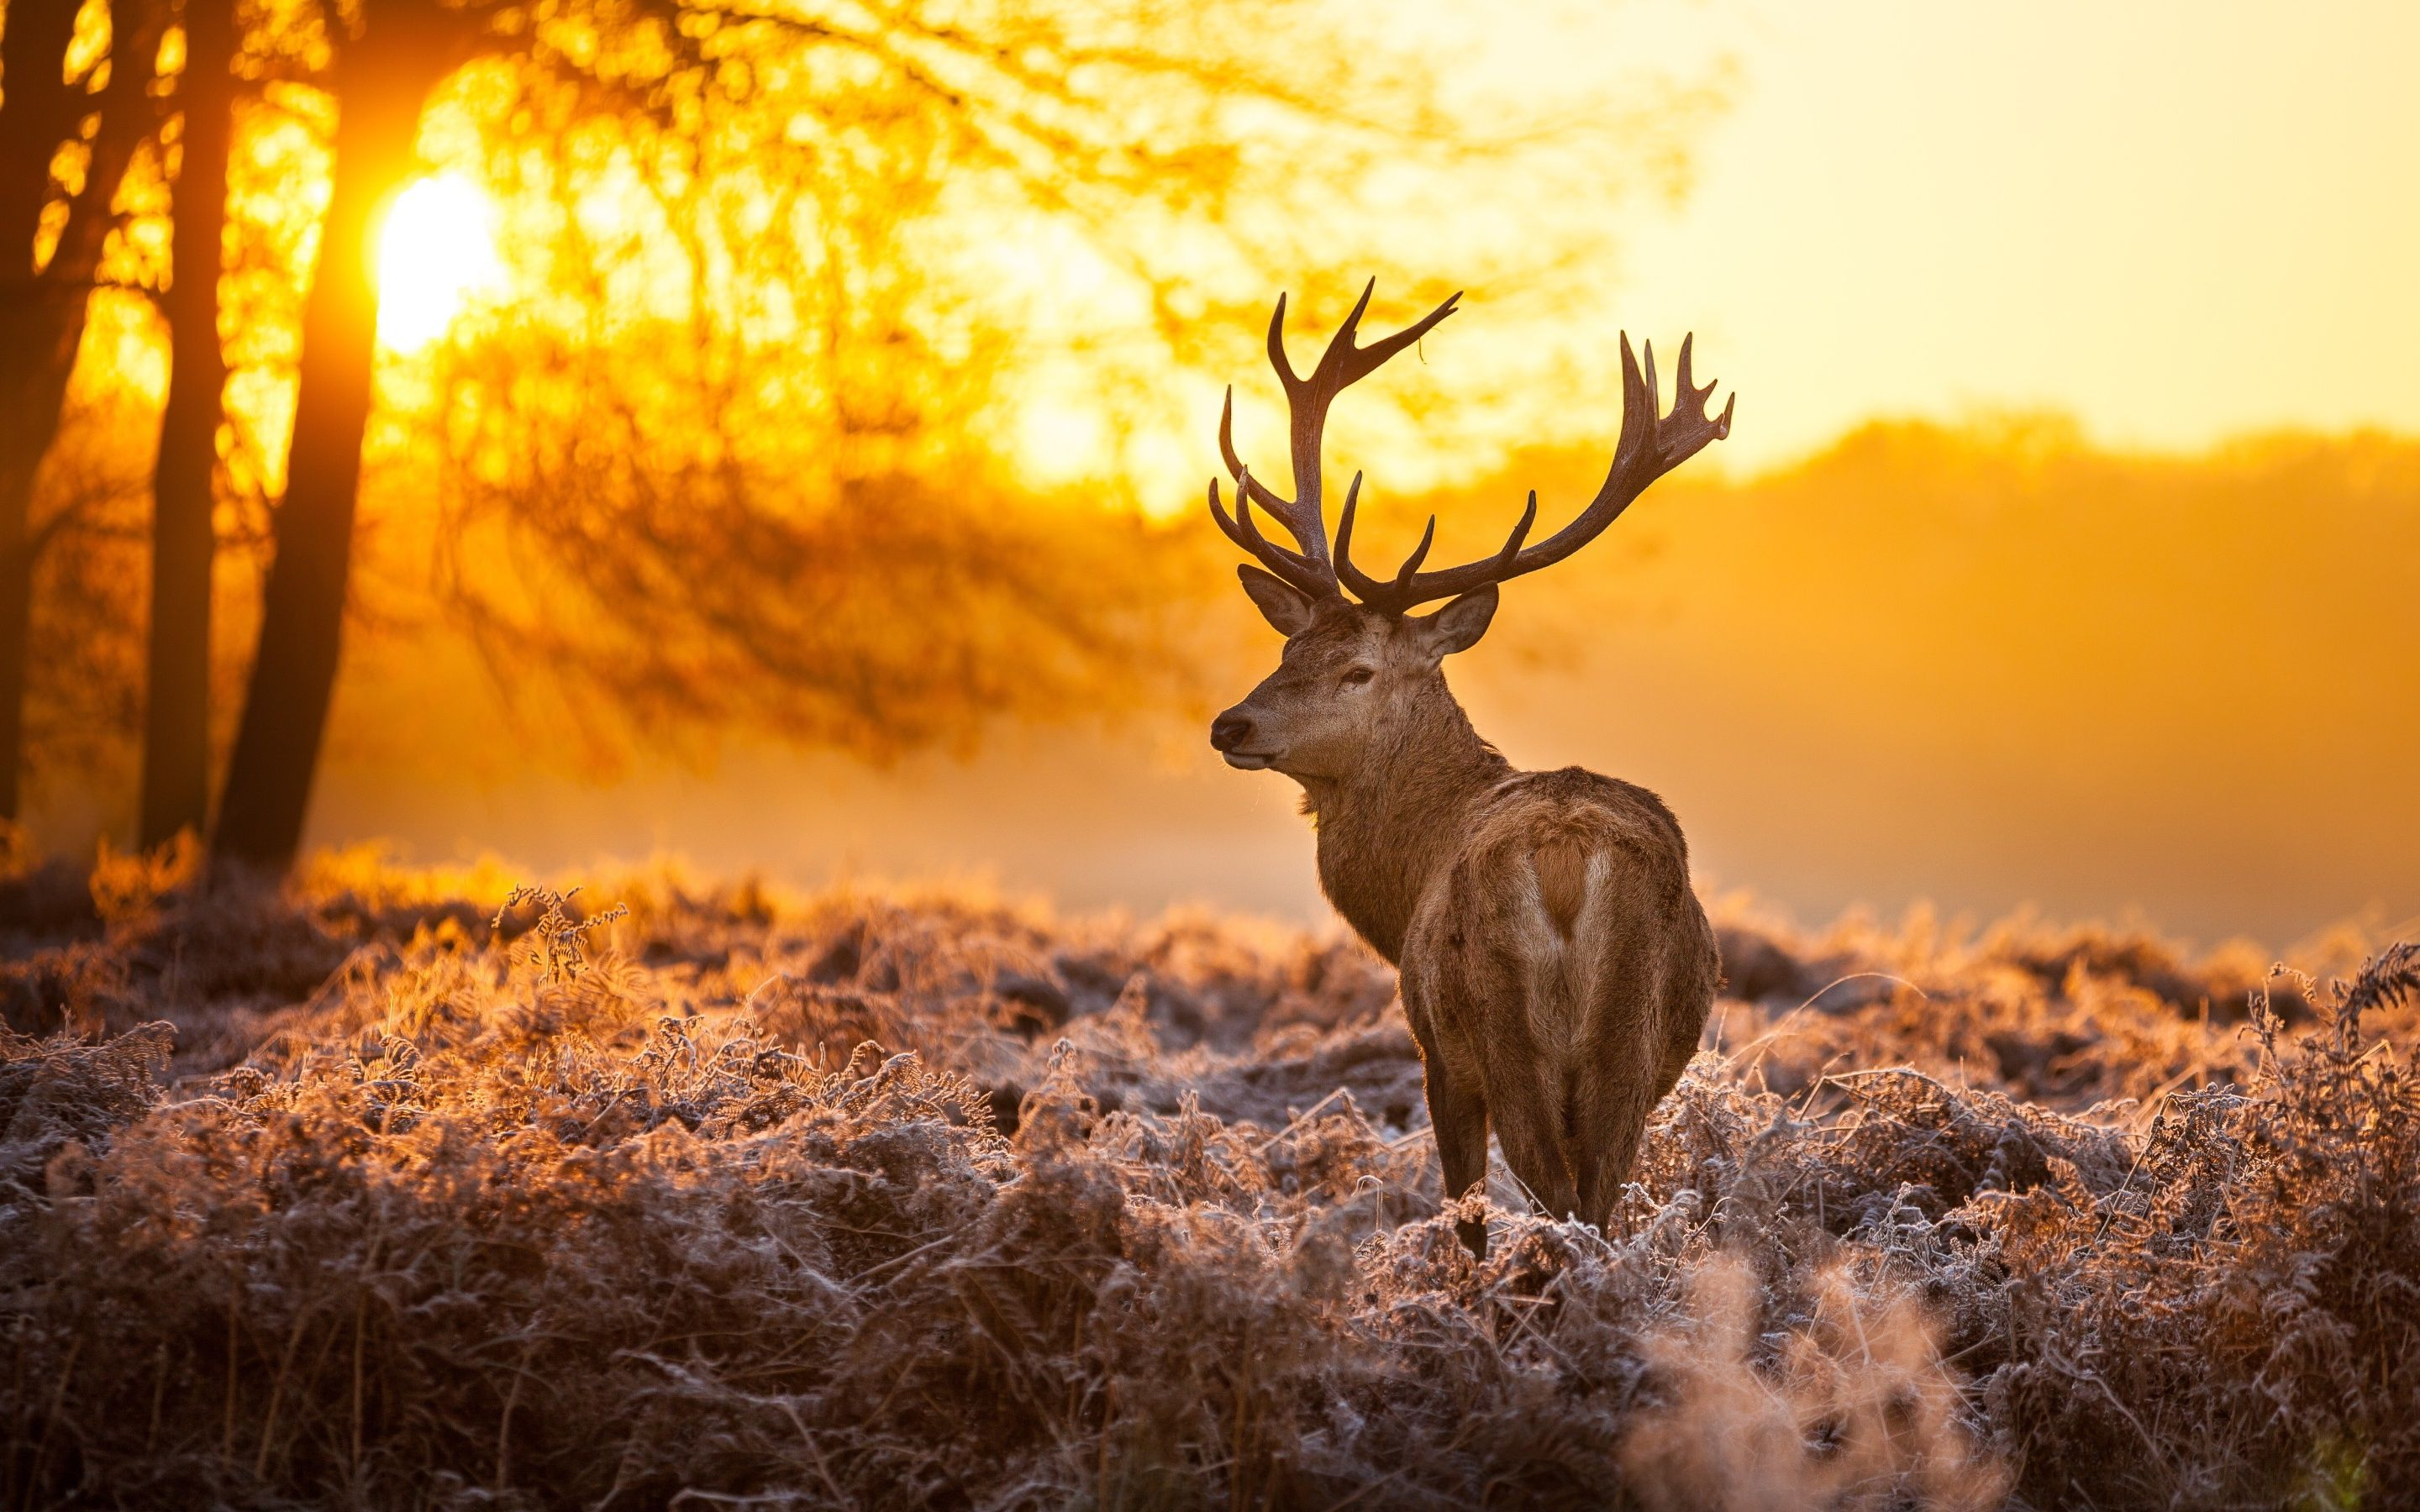 deer wallpapers get free top quality deer wallpapers for your desktop pc background ios